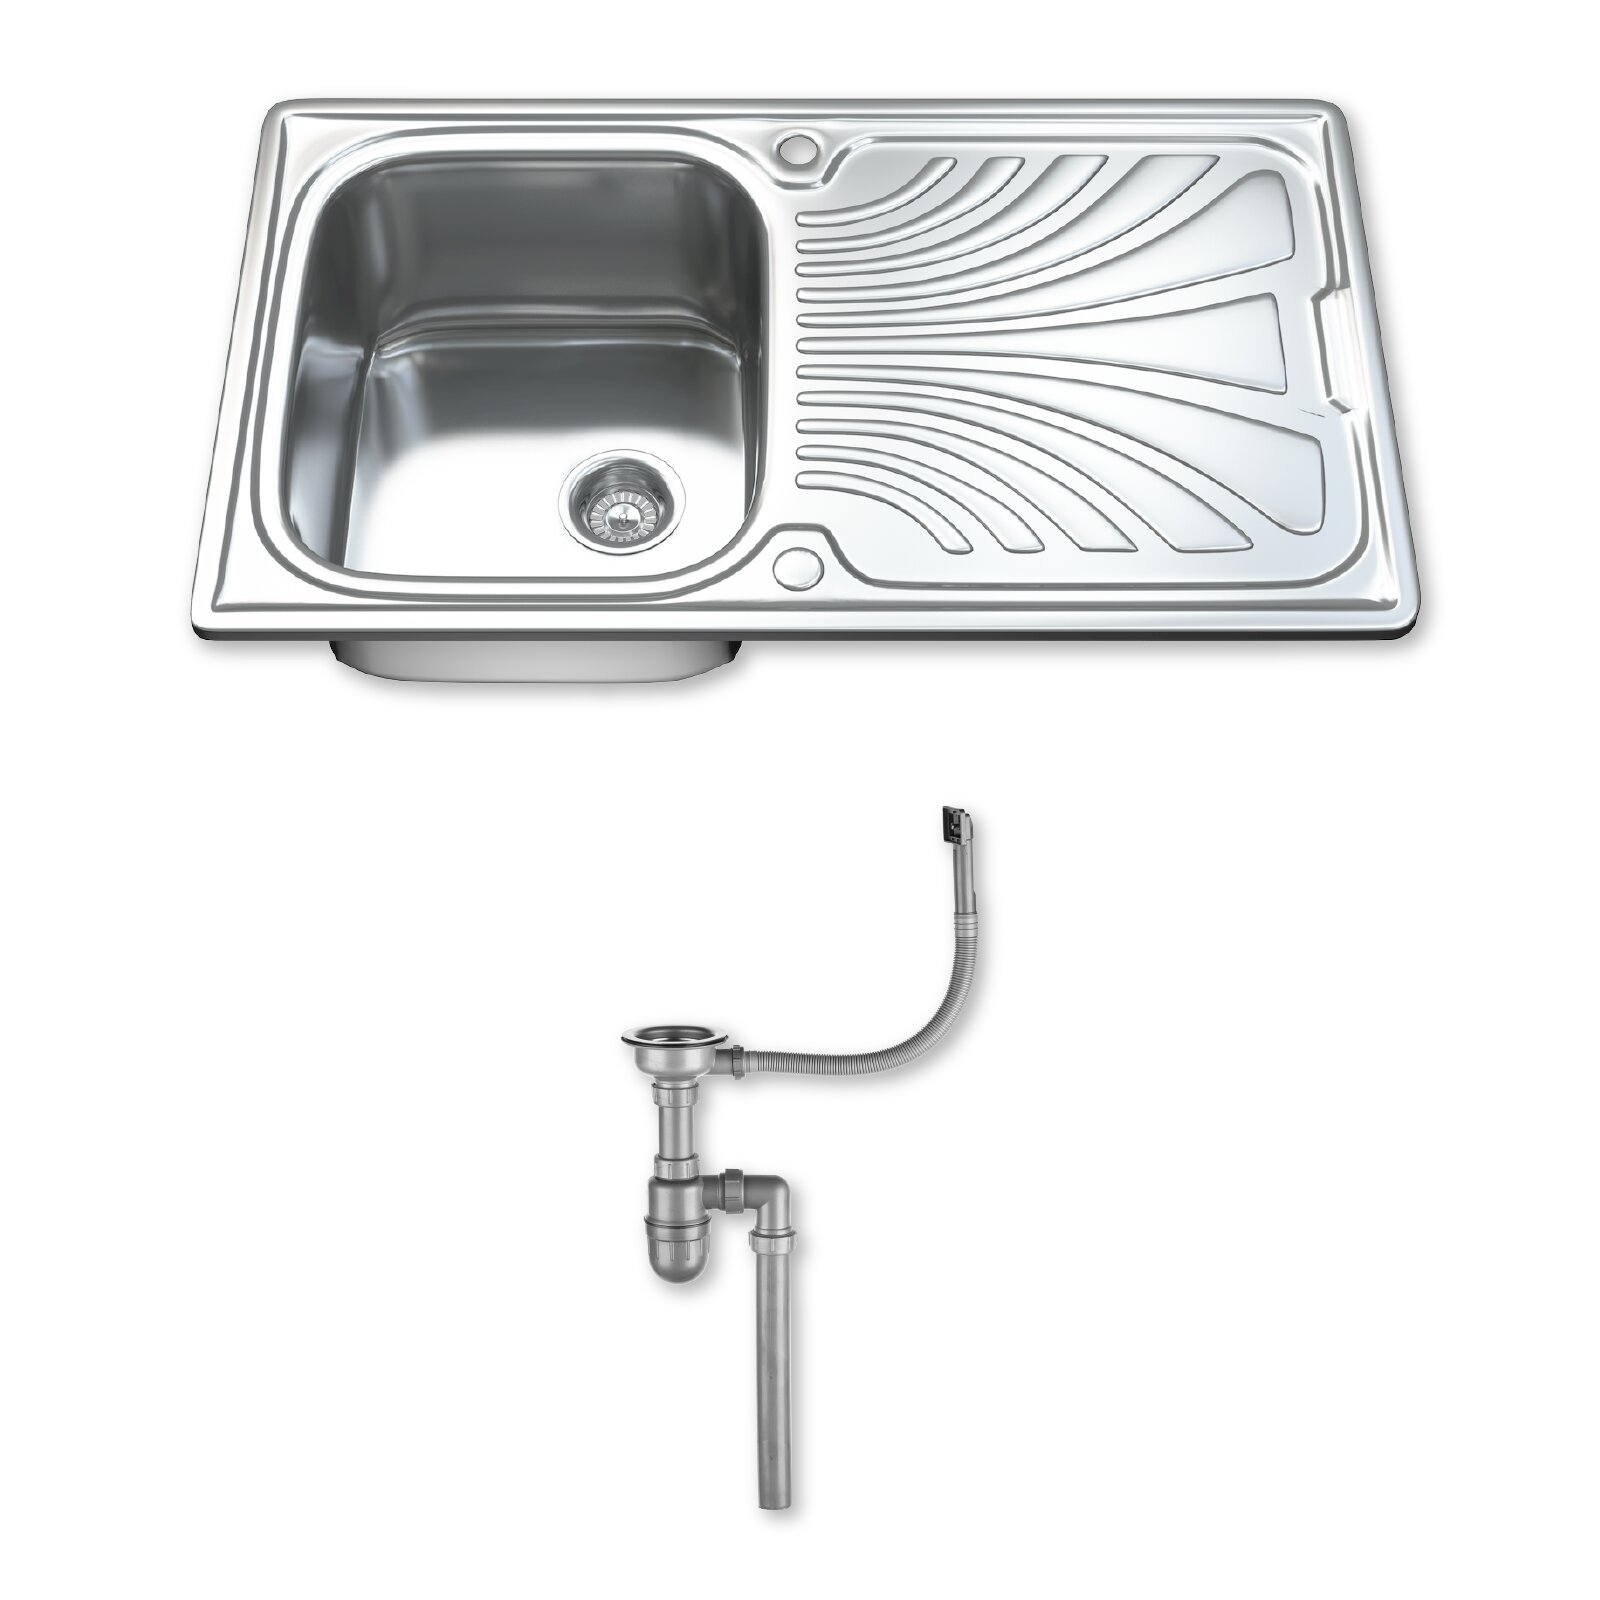 dihl 86cm x 50cm inset kitchen sink reviews wayfair uk